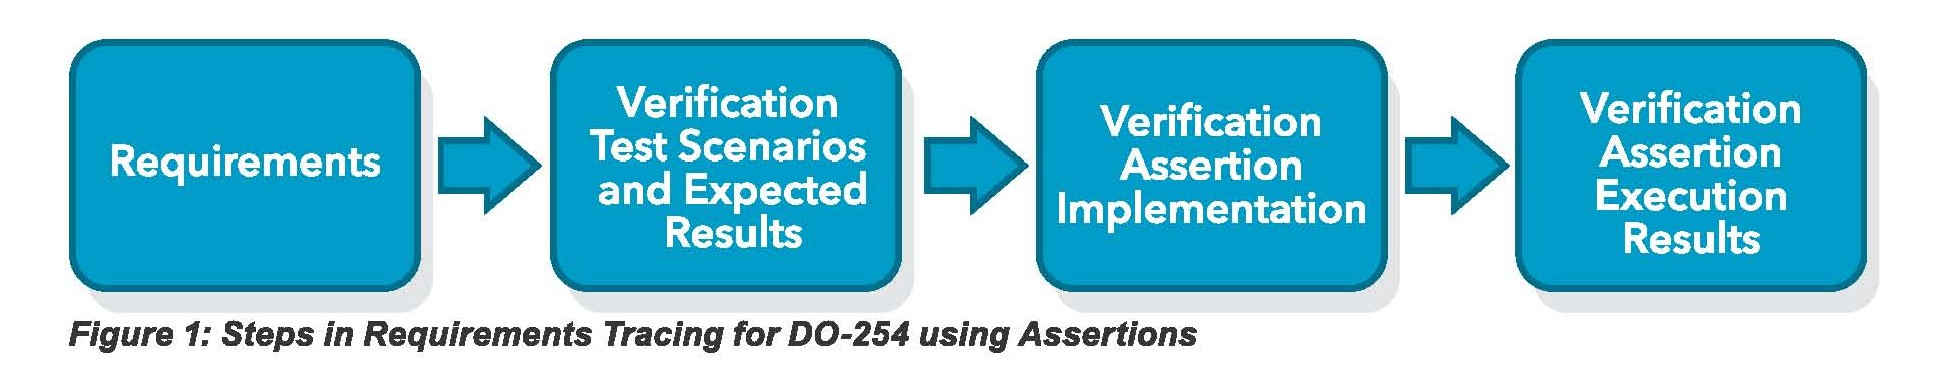 Figure 1. Steps in Requirements Tracing for DO-254 using Assertions